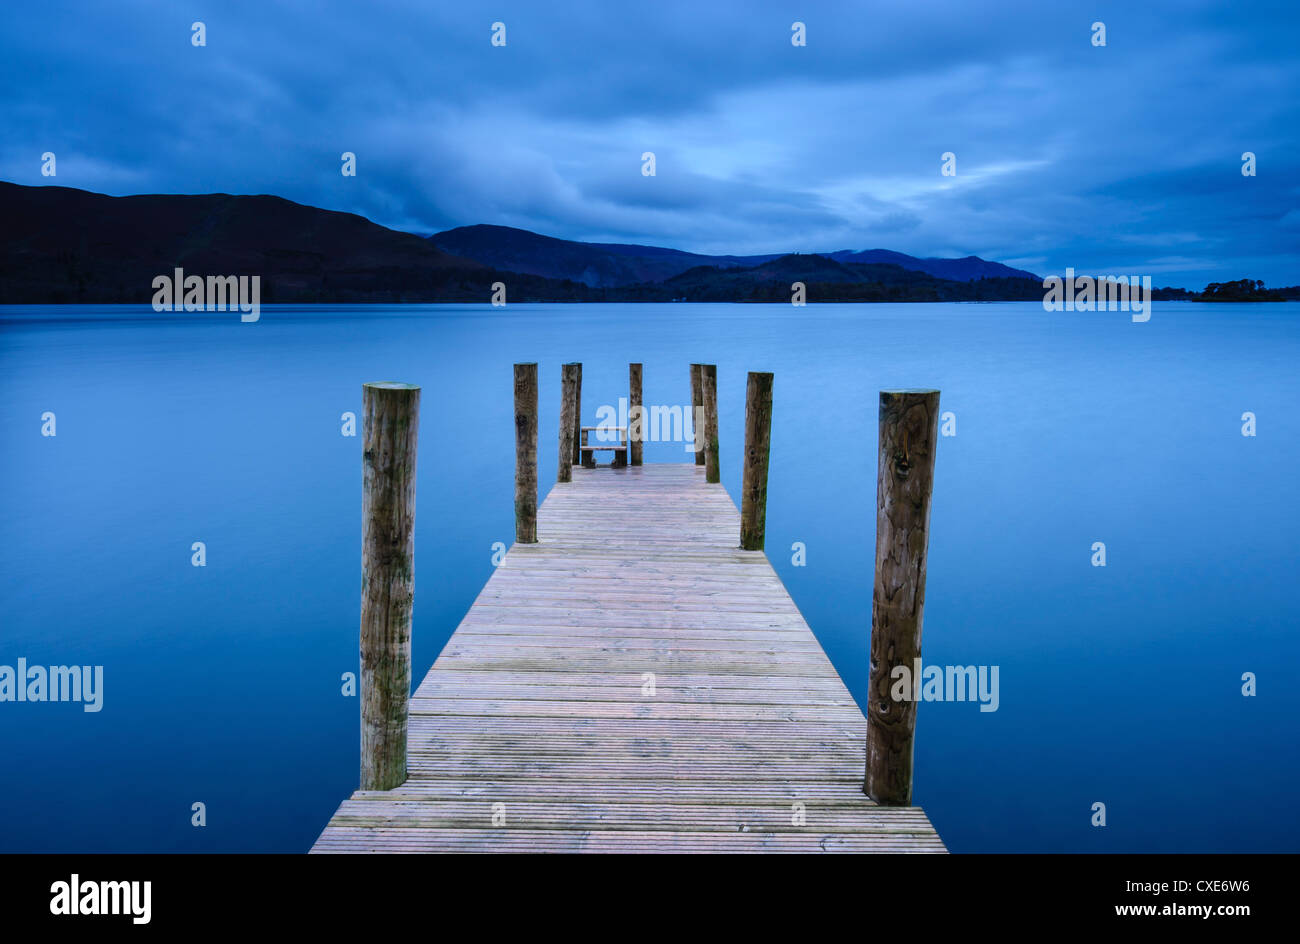 Dawn at Ashness Jetty, Barrow Bay, Derwent Water, near Keswick, Lake District National Park, Cumbria, England - Stock Image